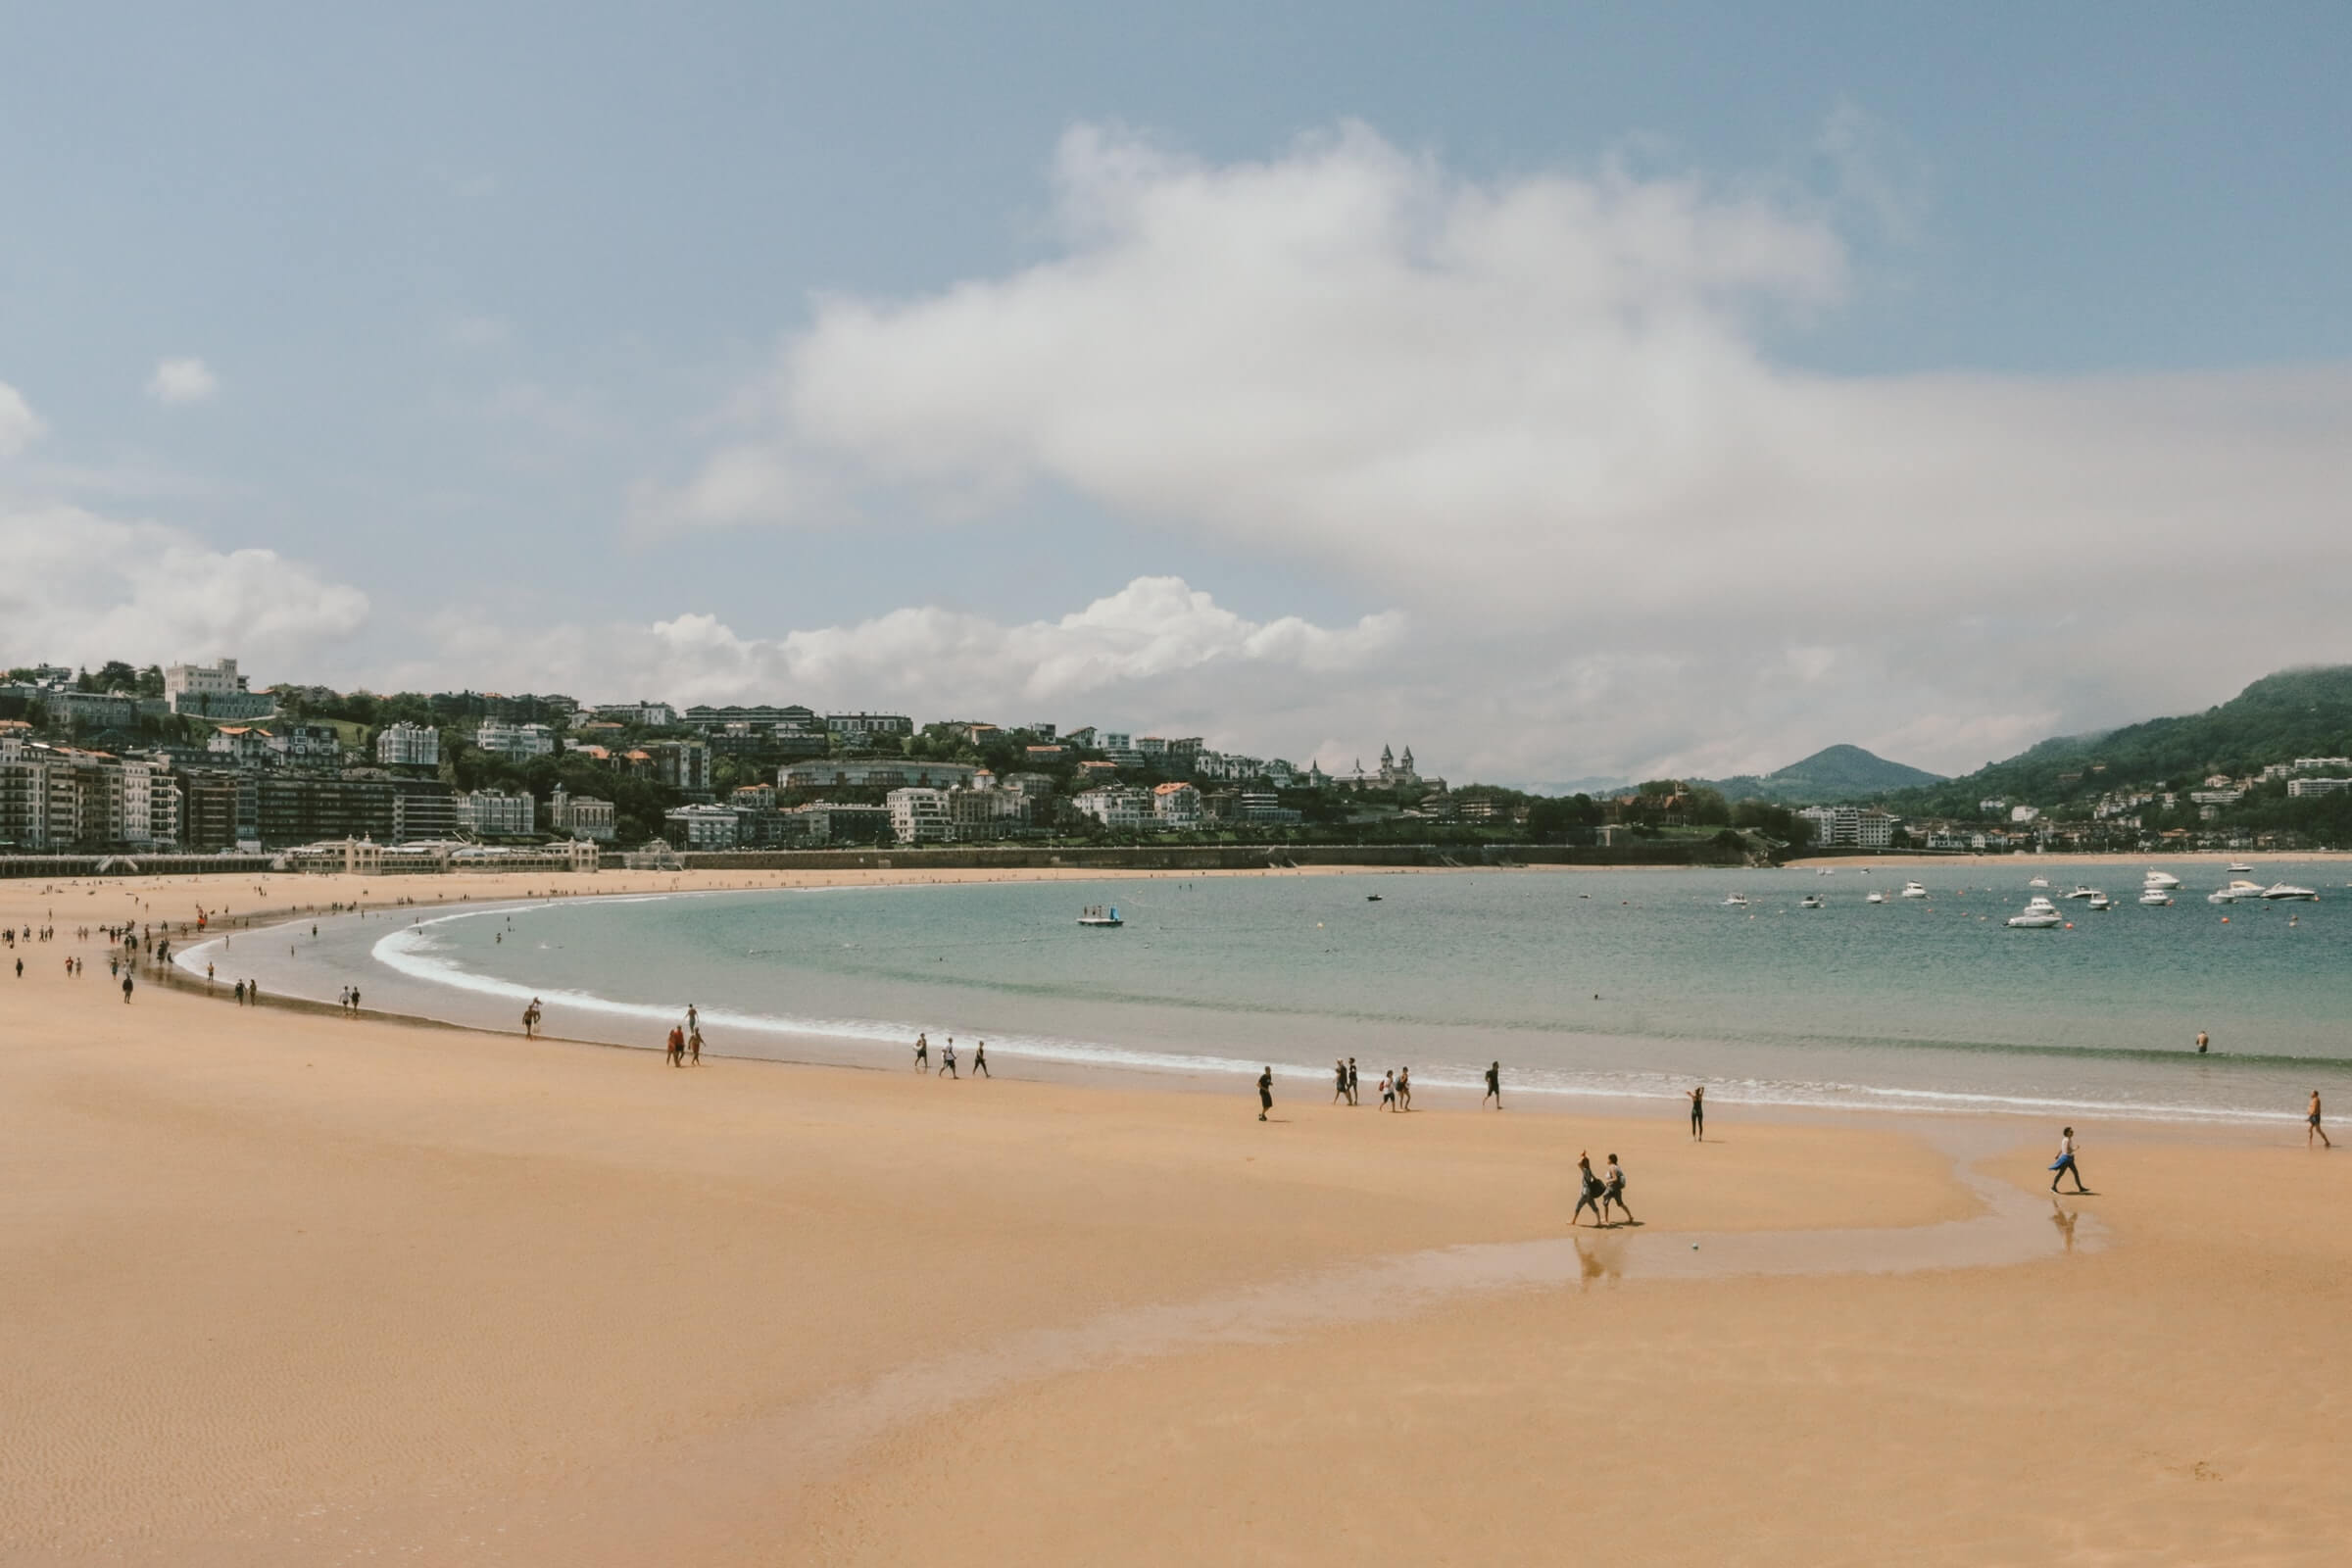 A wide view of a beach in Spain with a few people on the sand